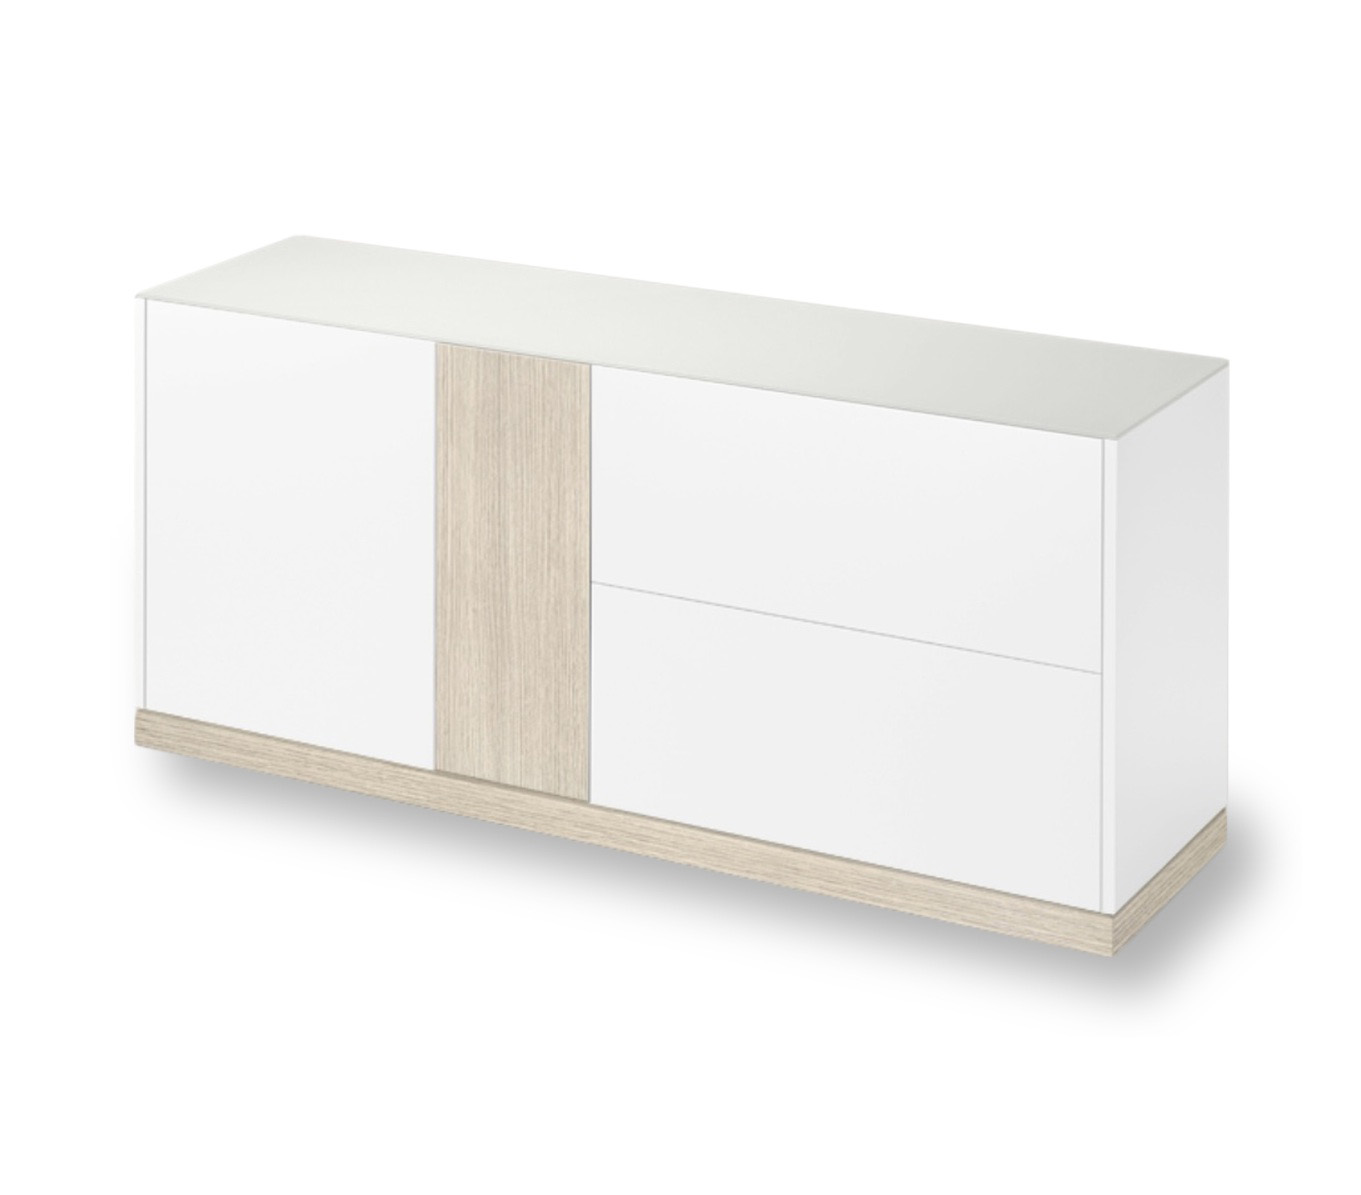 LINEA 185 LARGE SIDEBOARD, WHITE MATT LACQUERED BODY WITH WHITE ASHWOOD DOOR AND PLINTH -0